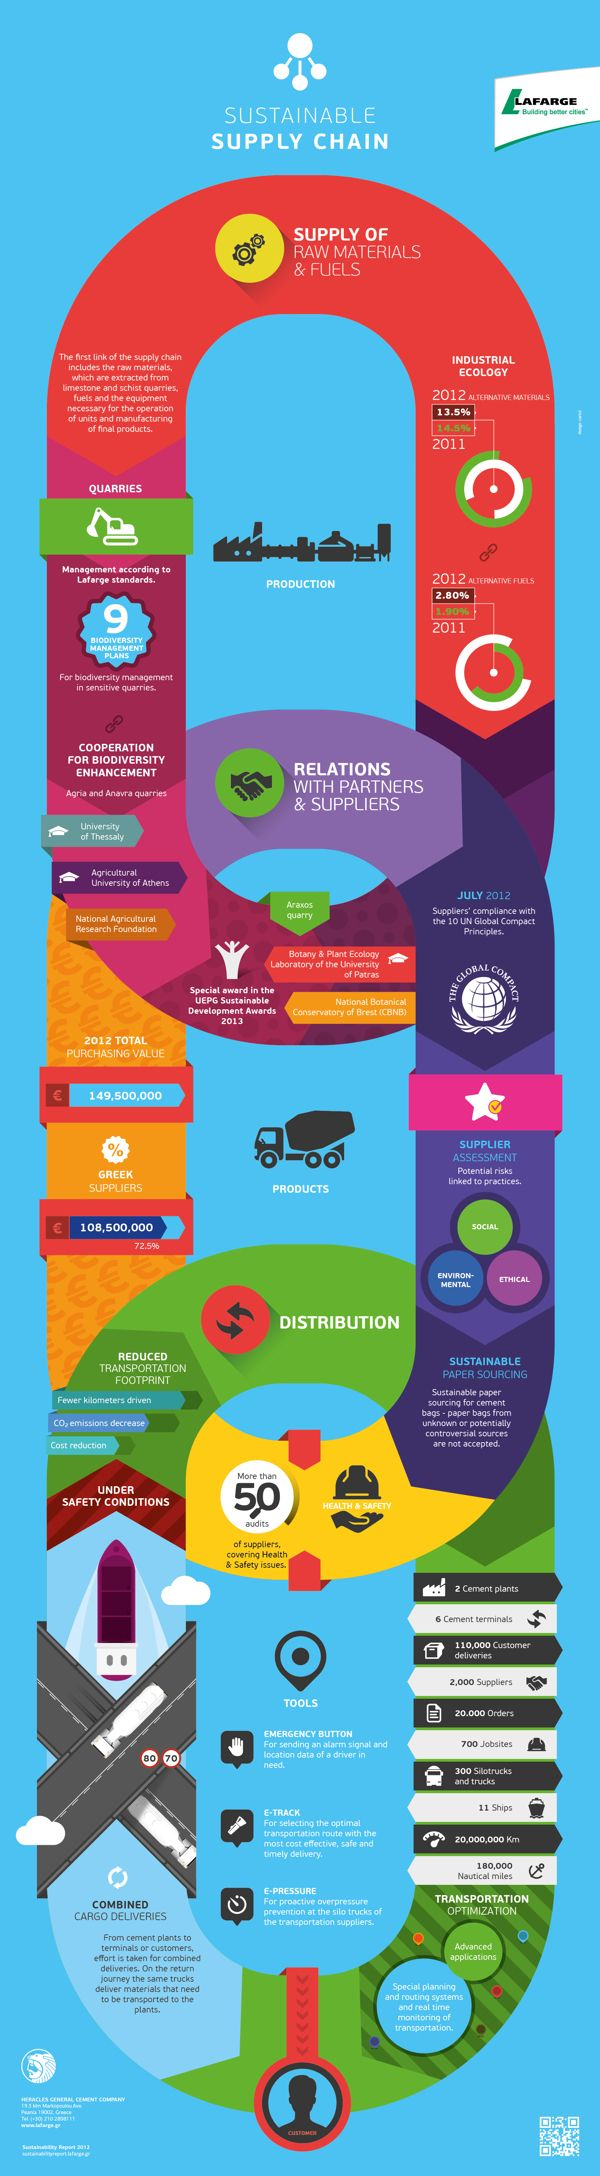 SUSTAINABLE SUPPLY CHAIN INFOGRAPHIC by DESIGN CARTEL, via Behance